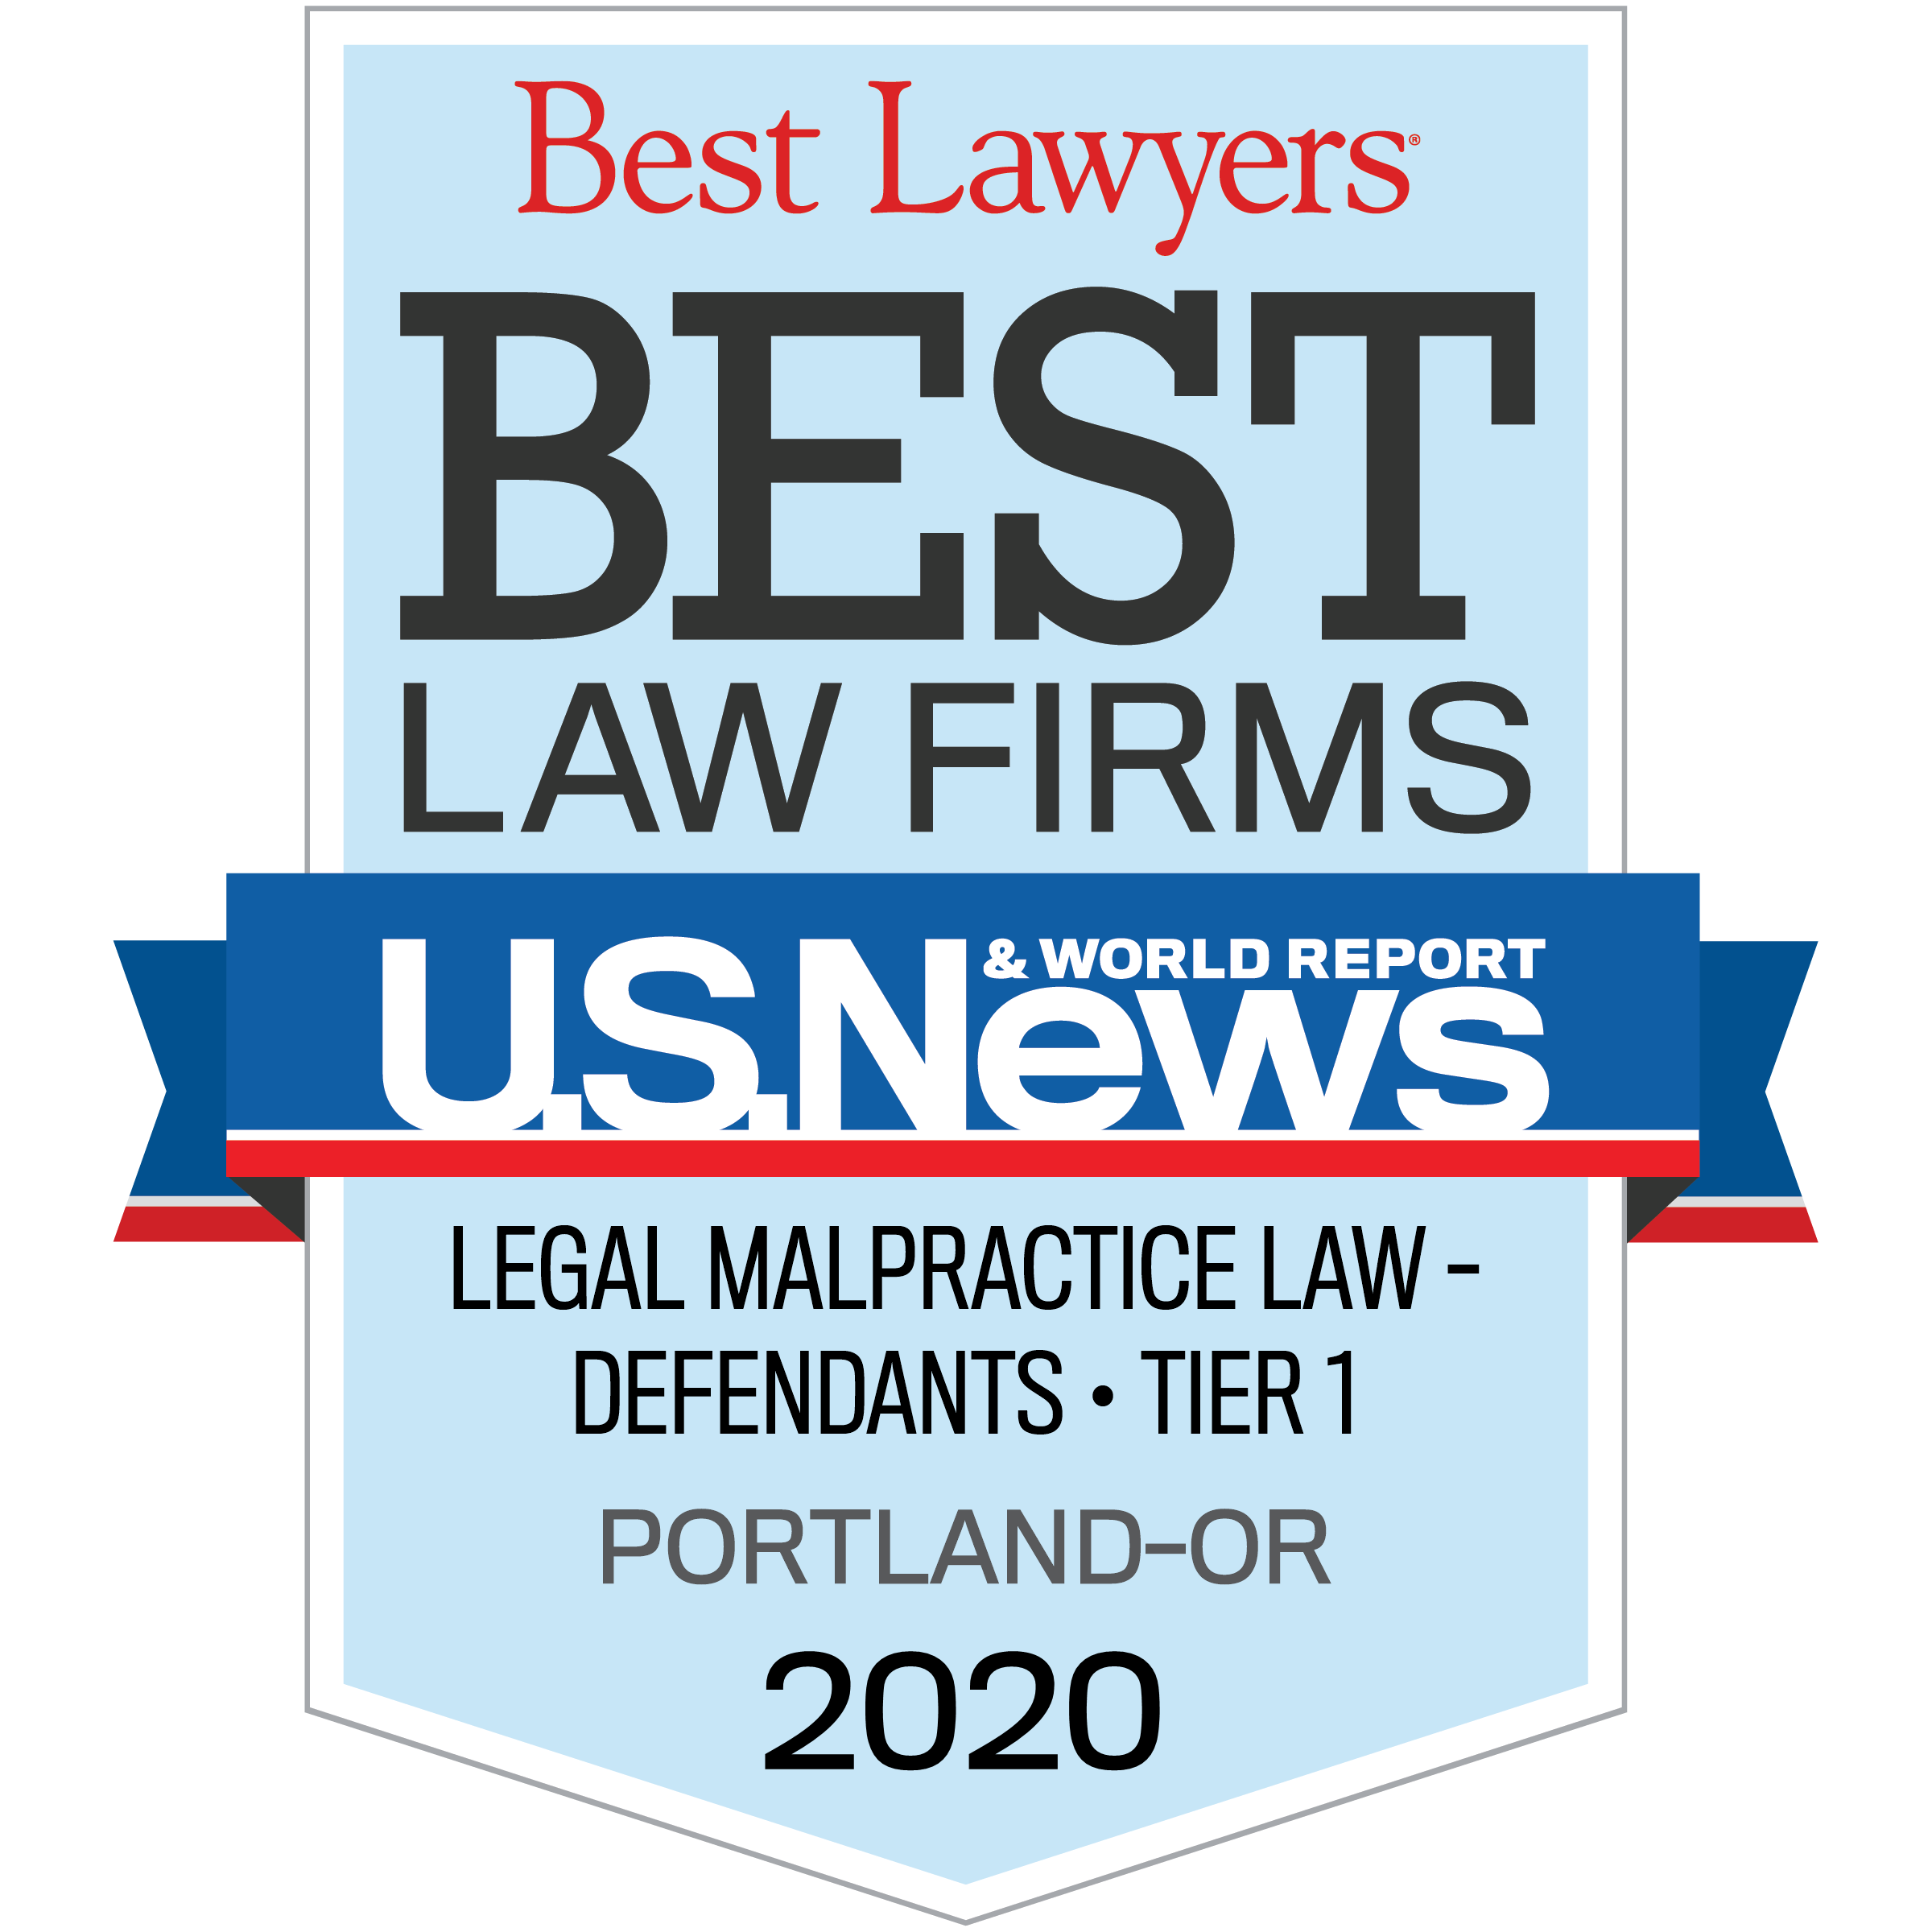 BestLawyers - Legal Malpractice